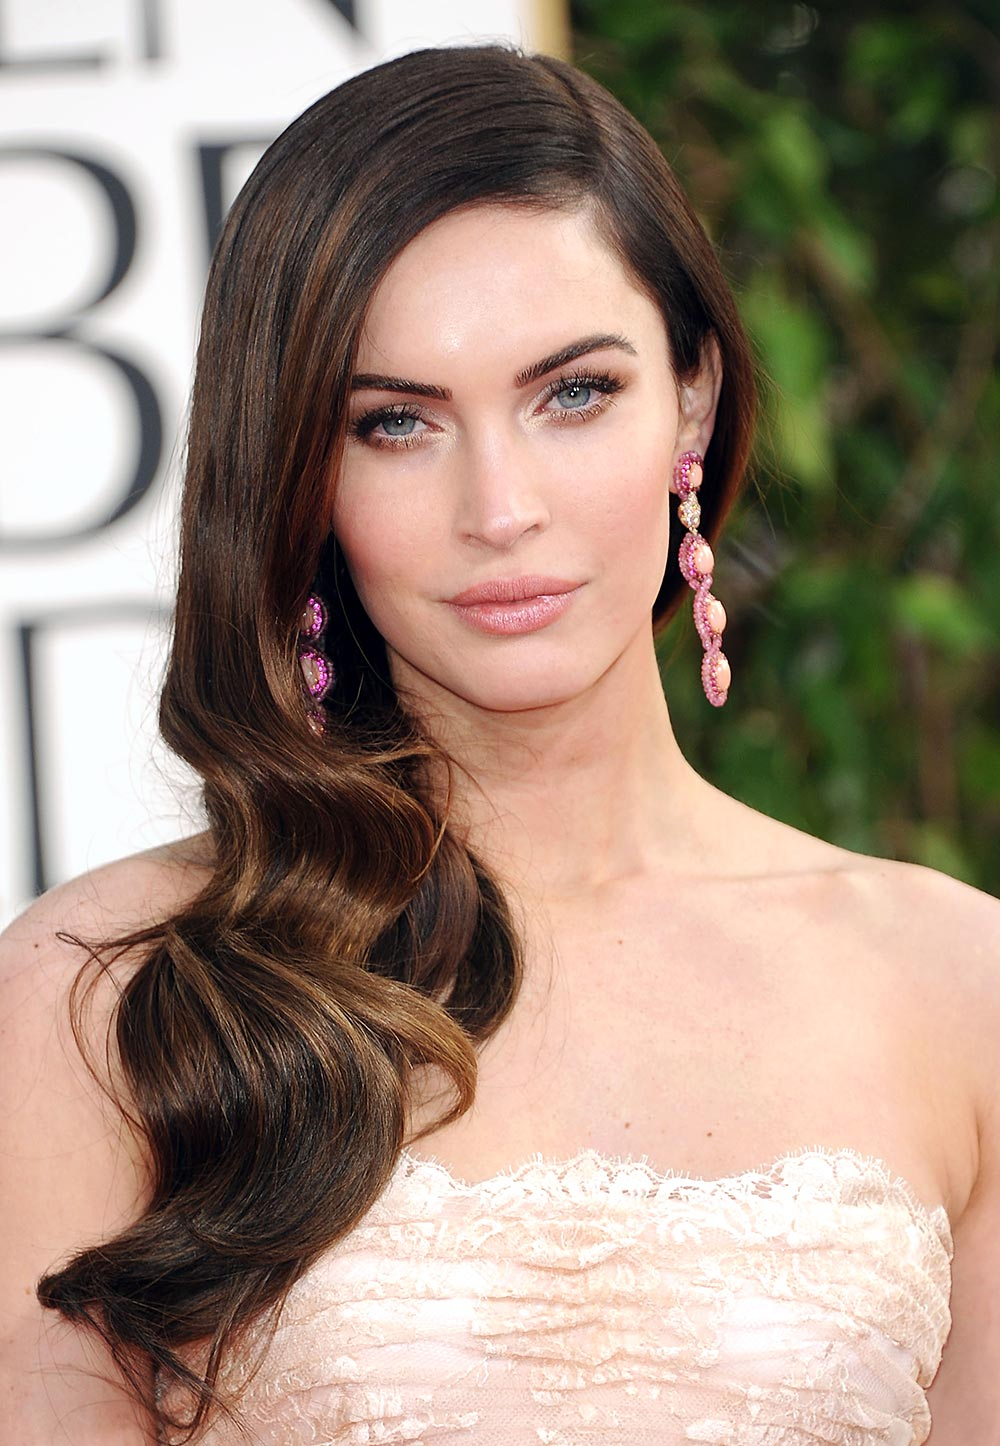 http://makeupforlife.net/wp-content/uploads/2013/01/megan-fox-makeup-2013-golden-globes.jpg